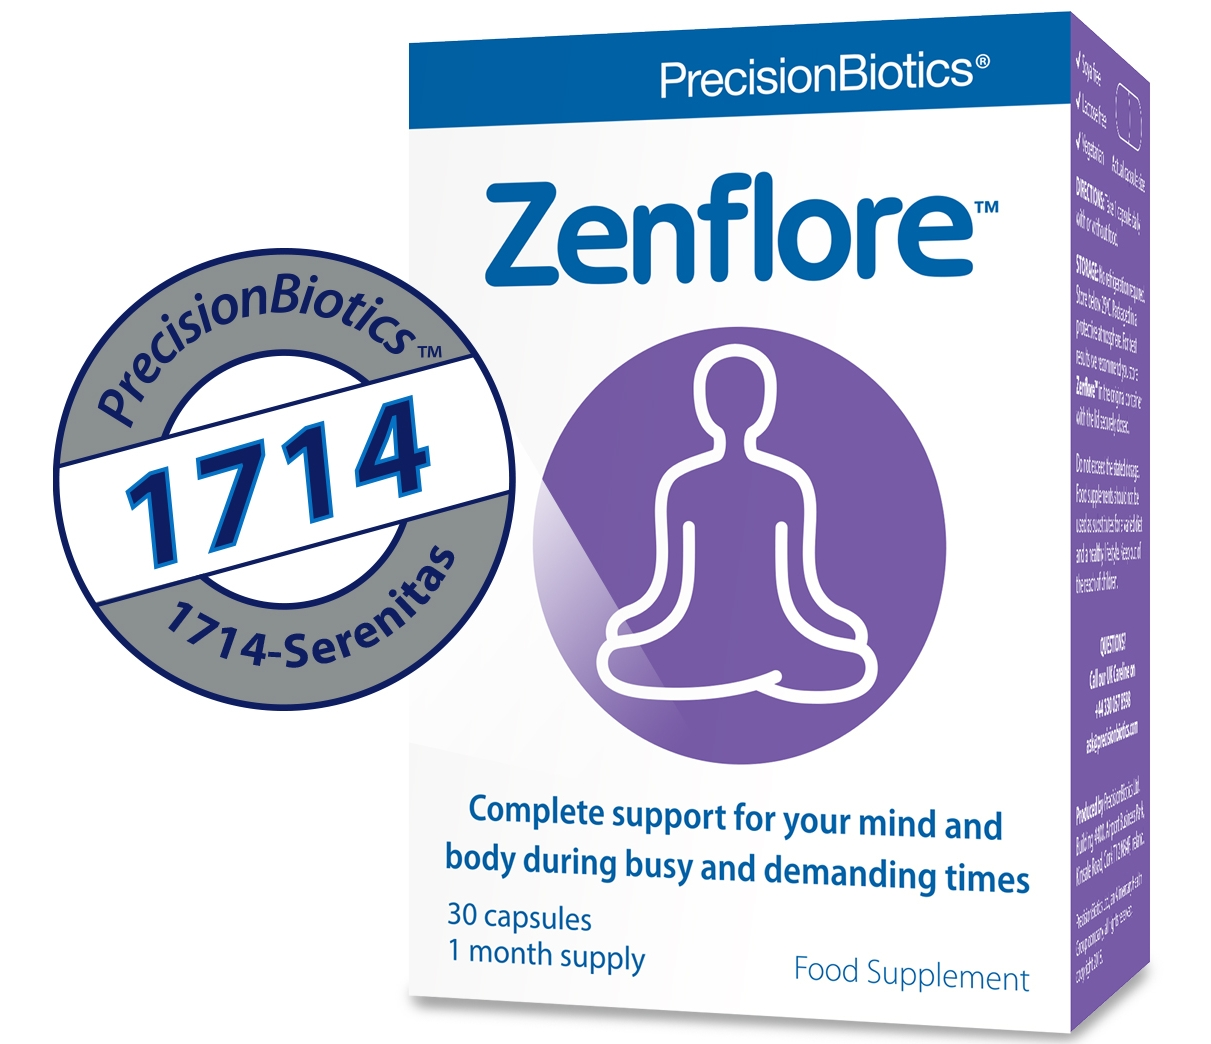 1714® Culture - 1714-Serenitas(TM), one of the first probiotics clinically proven to reduce levels of the stress hormone, cortisol.***. With growing interest in the potential of the gut-brain axis and 'psychobiotics', the 1714 culture has demonstrated ground breaking clinical activity (ENCK?) and safety.Add text on continuous research/upcoming dataIt is currently commercialised as a food supplement in Europe, Zenflore®.